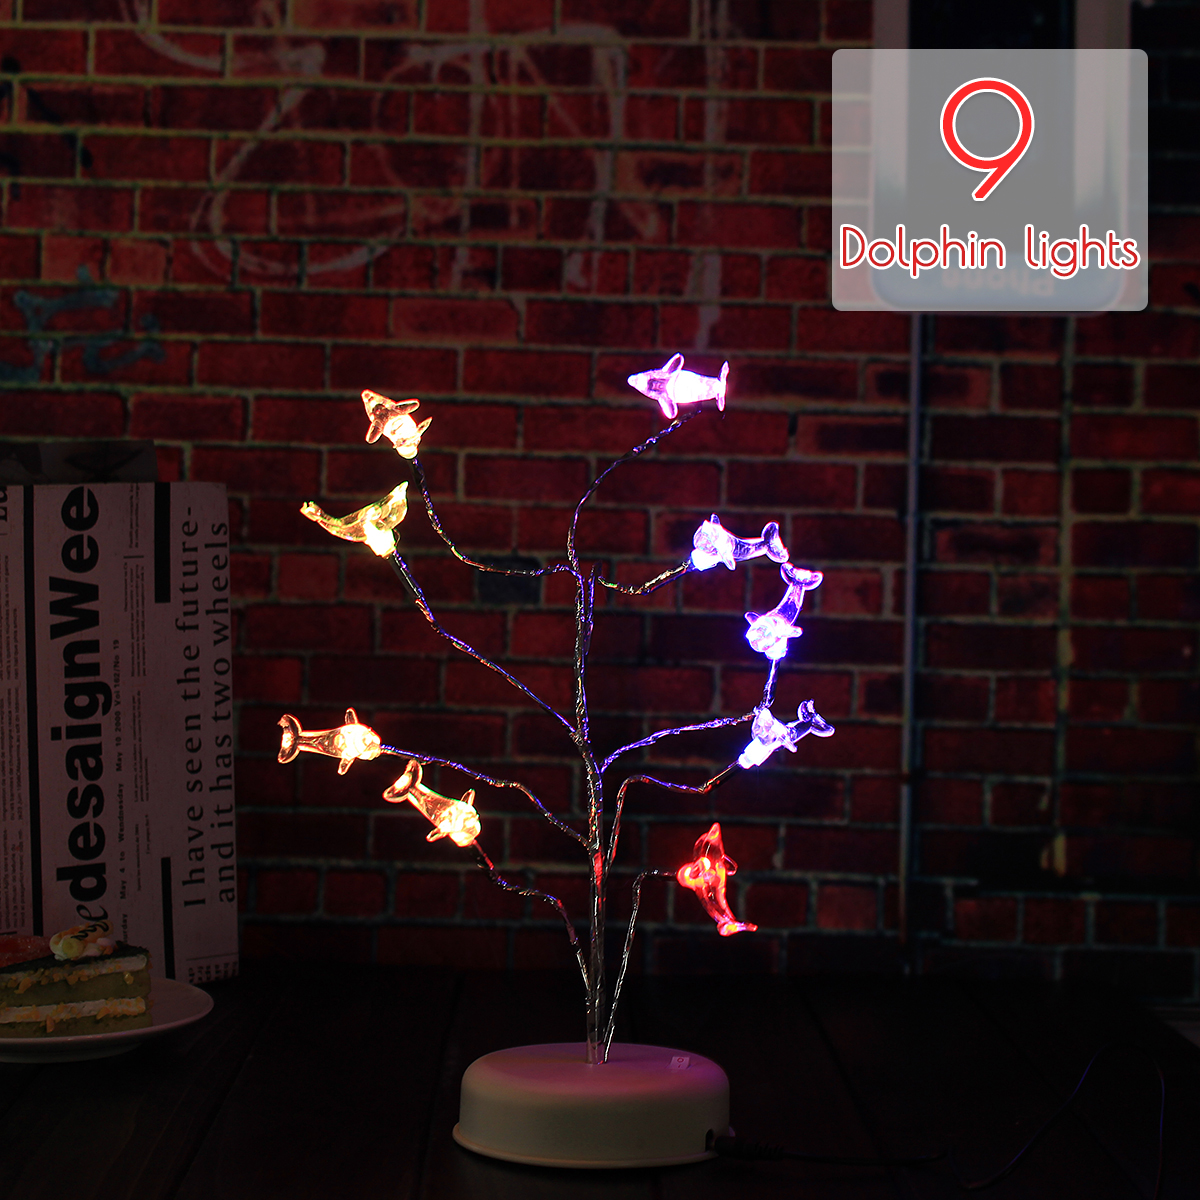 LED Night Light Nine Dolphins Tree Branch Lights Decoration Light Table Lamp Charging Gift Decor